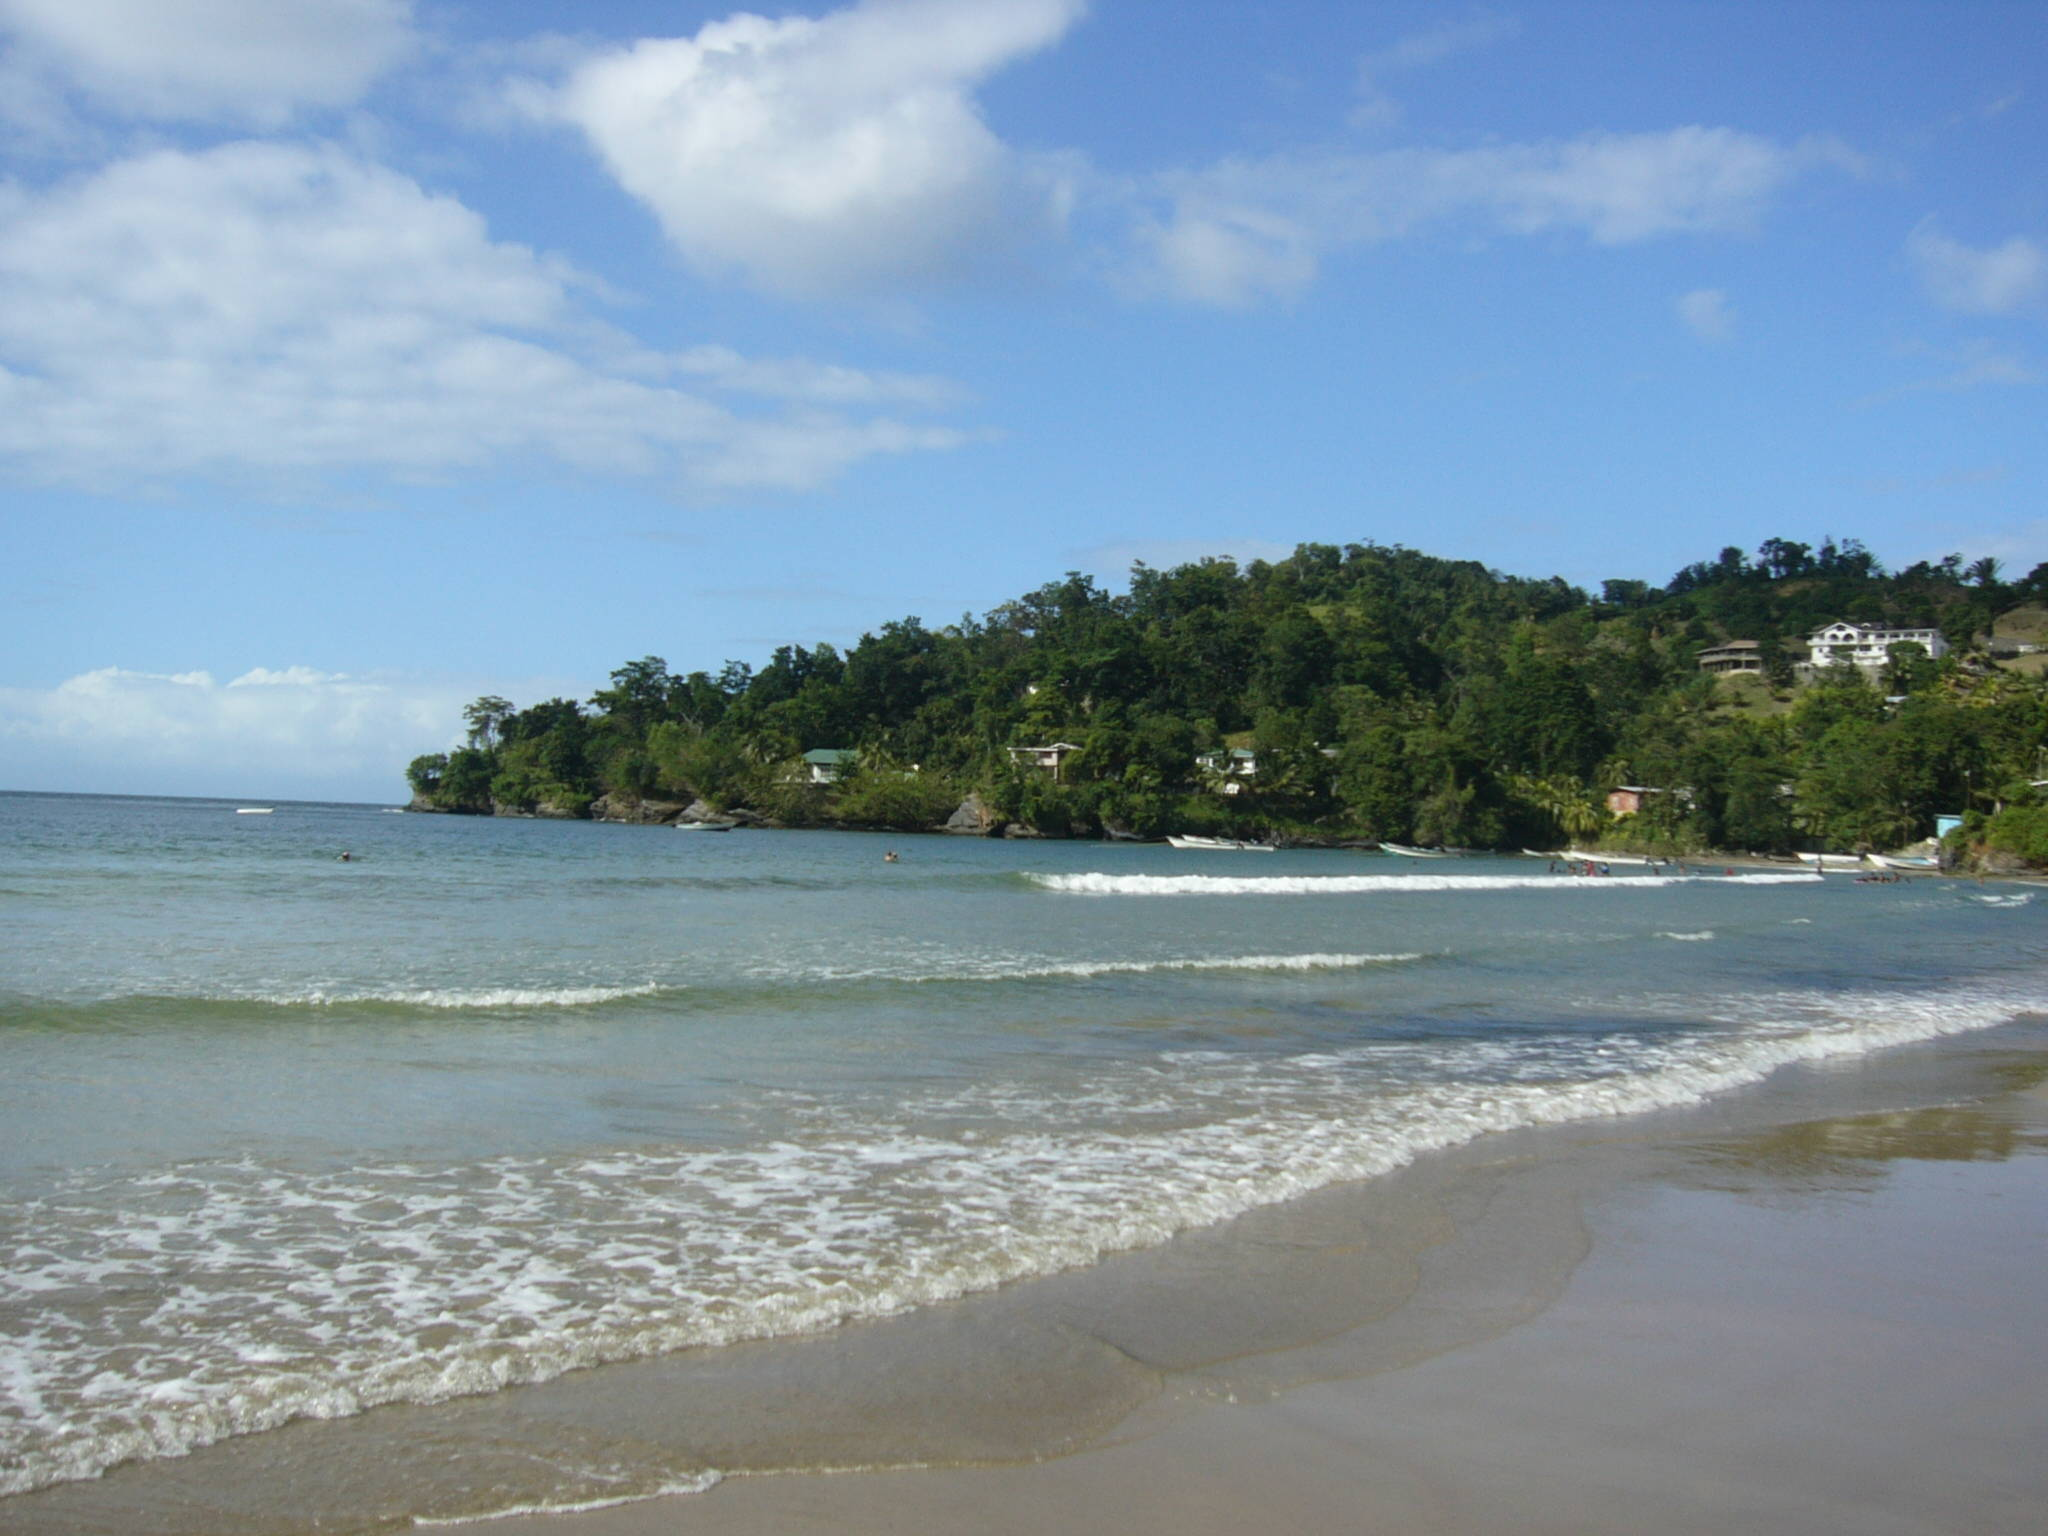 Las Cuevas Bay Destination Trinidad And Tobago Tours Holidays Vacations And Travel Guide